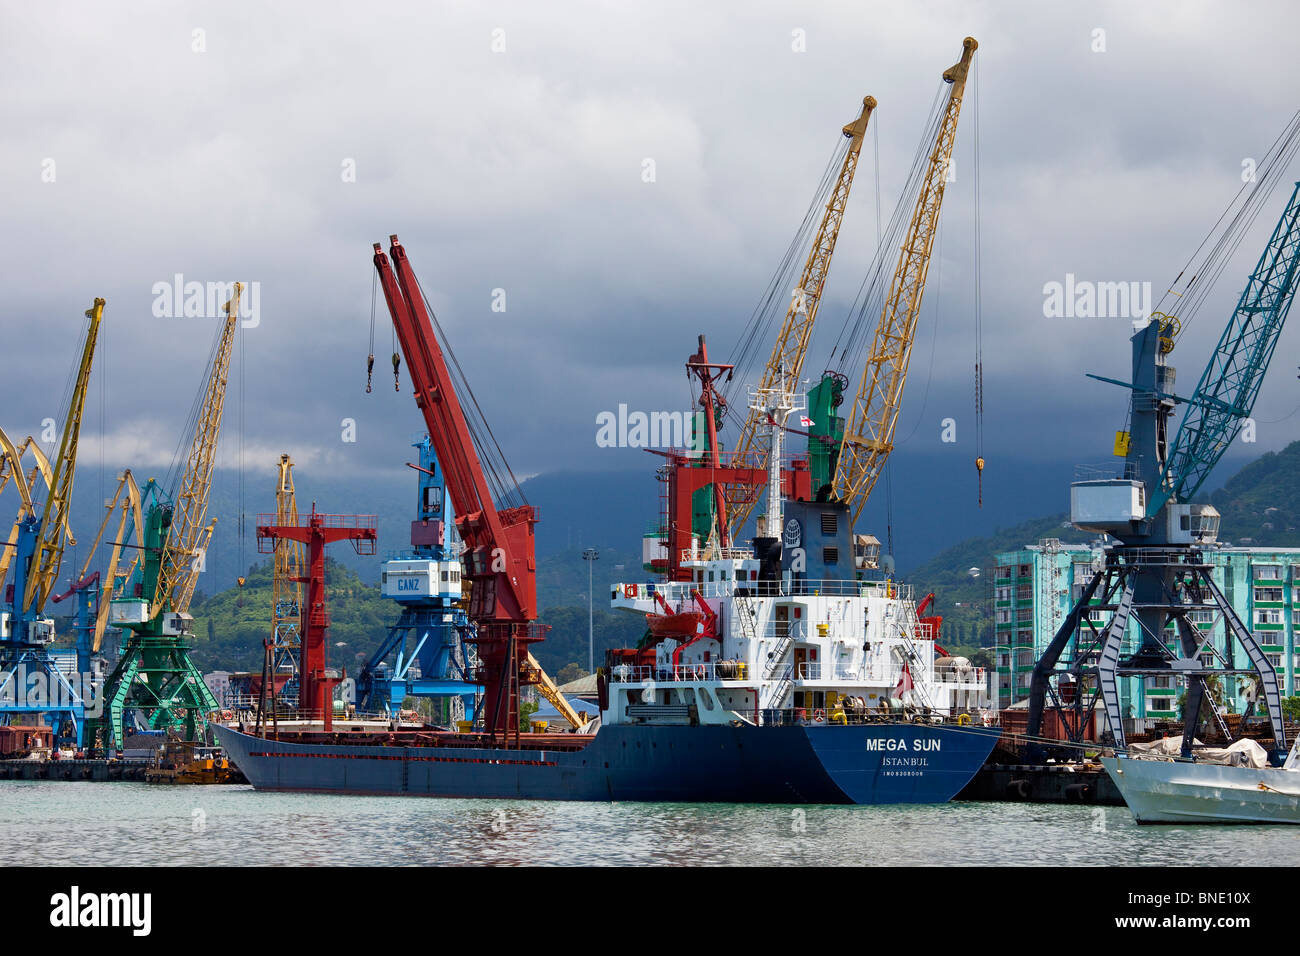 Turkish ship at port in Batumi, Georgia - Stock Image